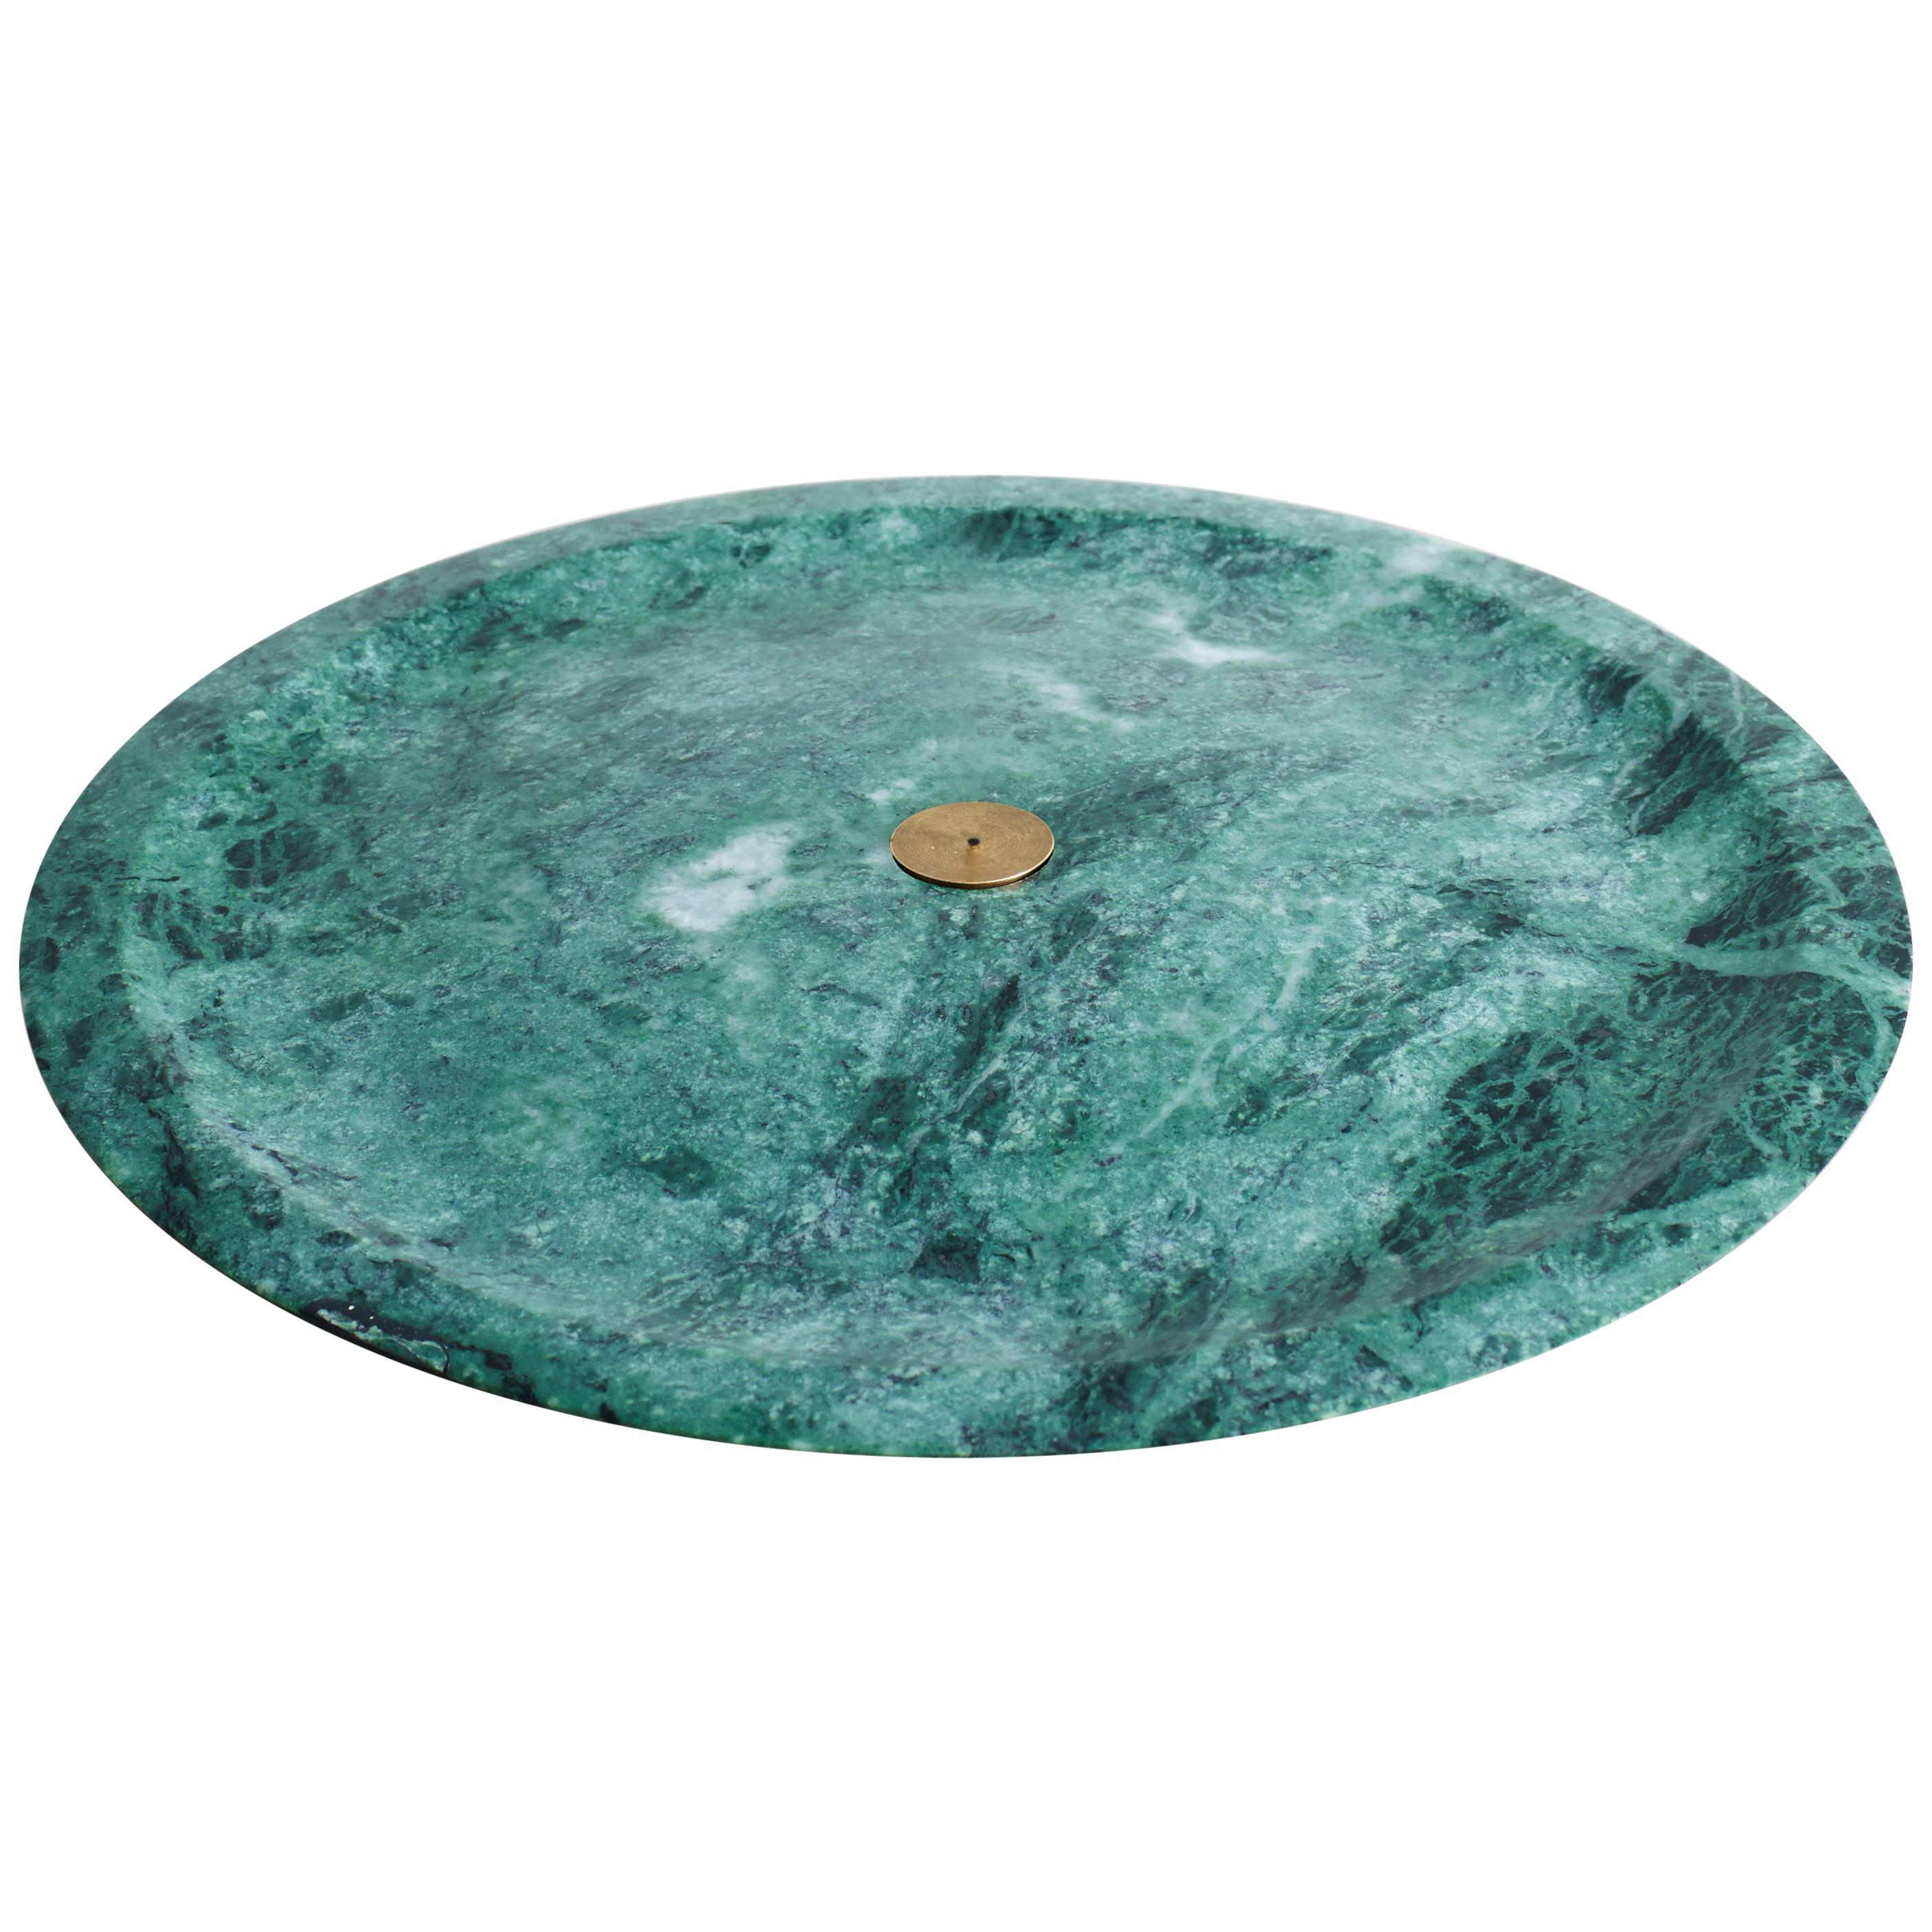 Incense Plate, Green Guatemala Sculpted Marble by Henry Wilson